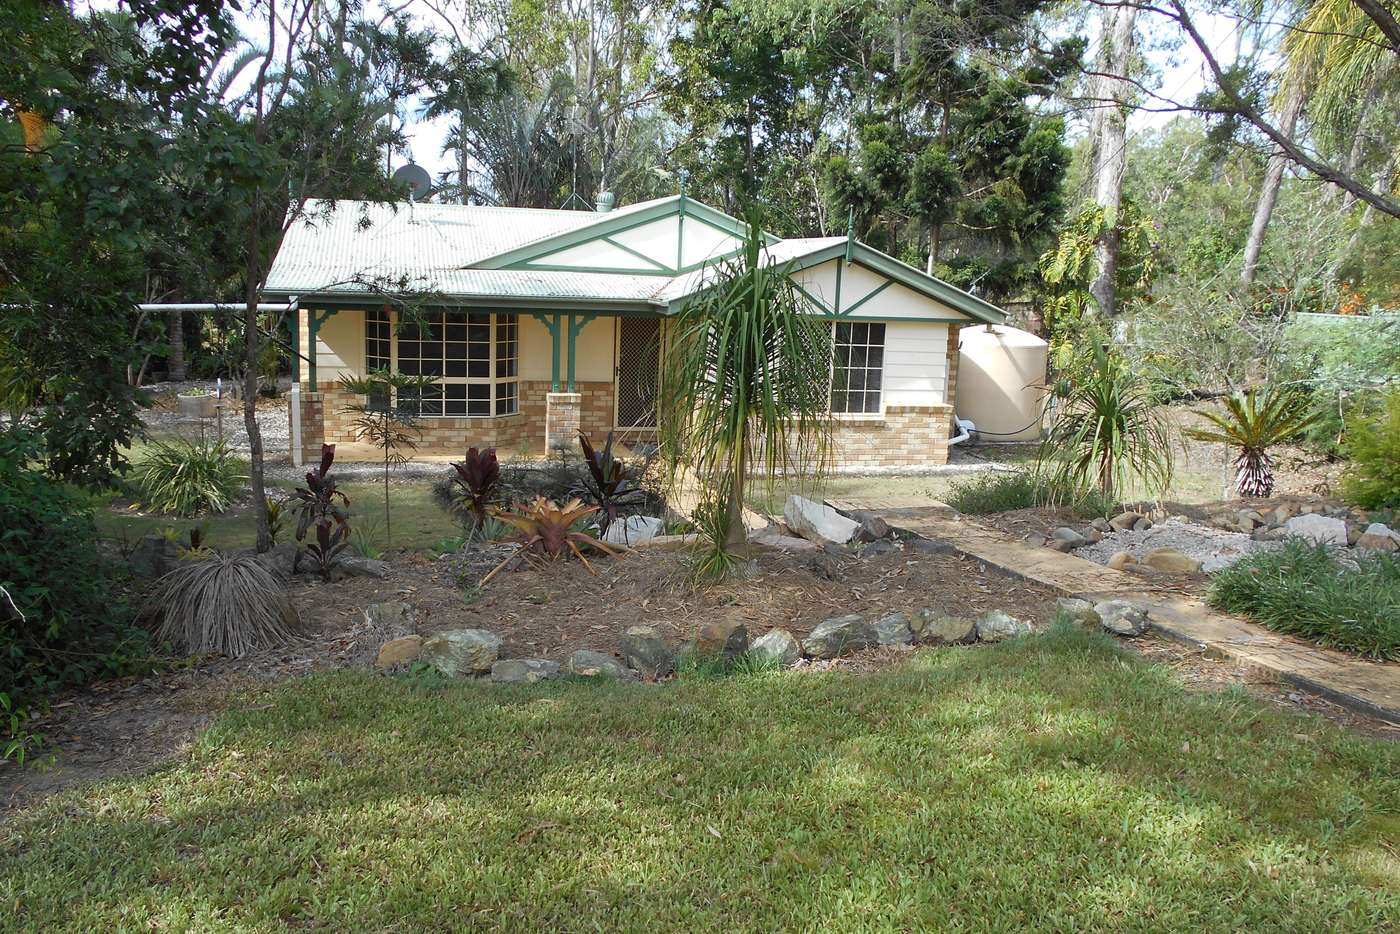 Main view of Homely house listing, 15-19 Kauri Ct, Woodford QLD 4514